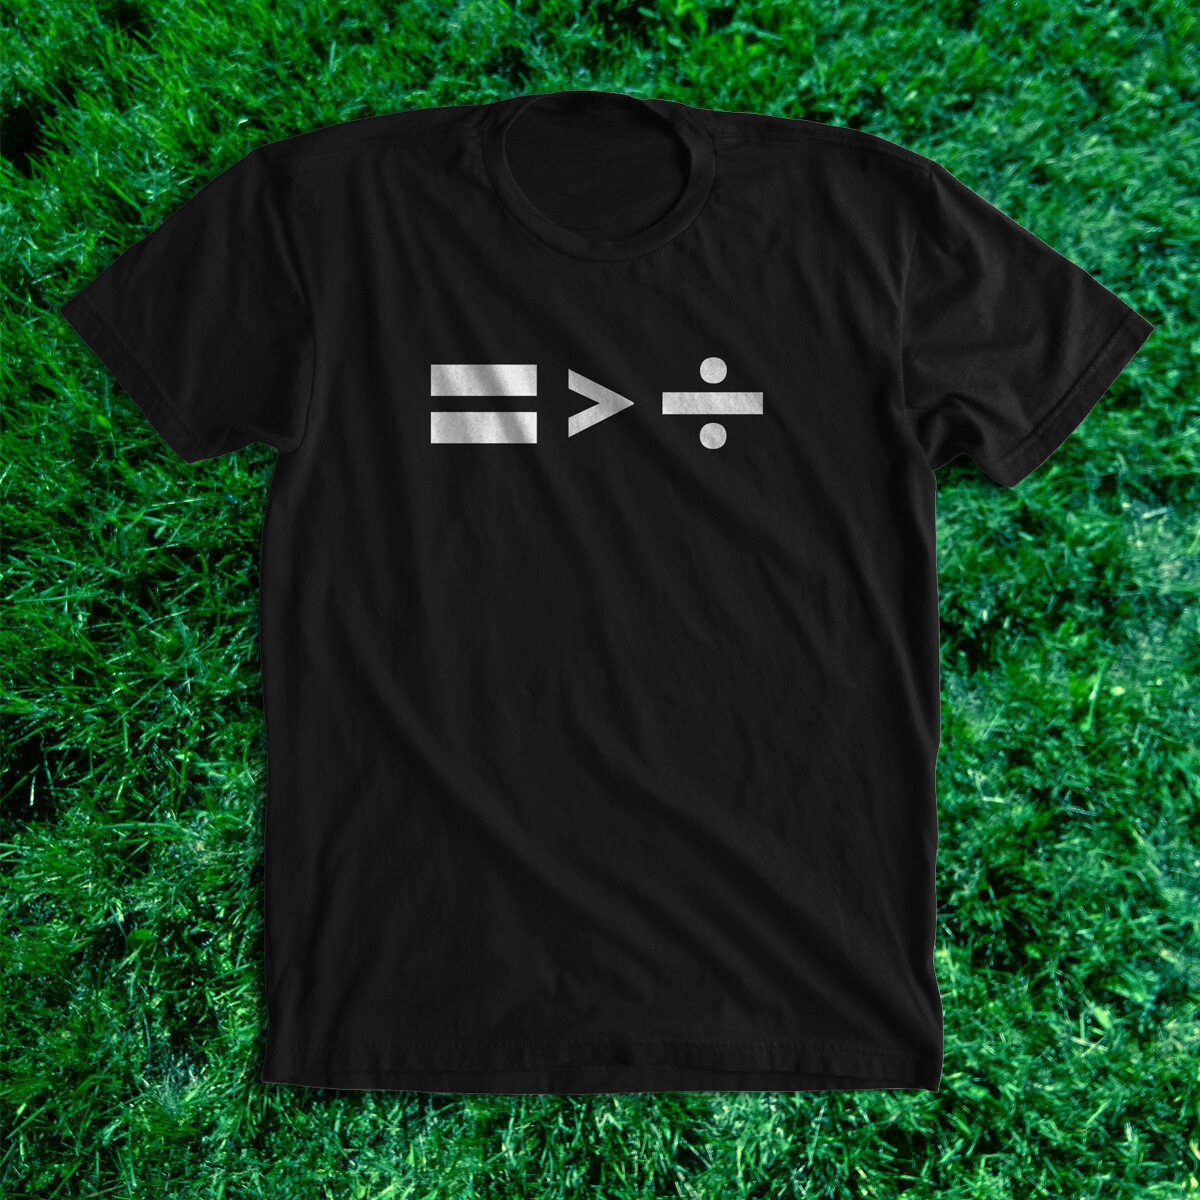 GREATER THAN - black tee